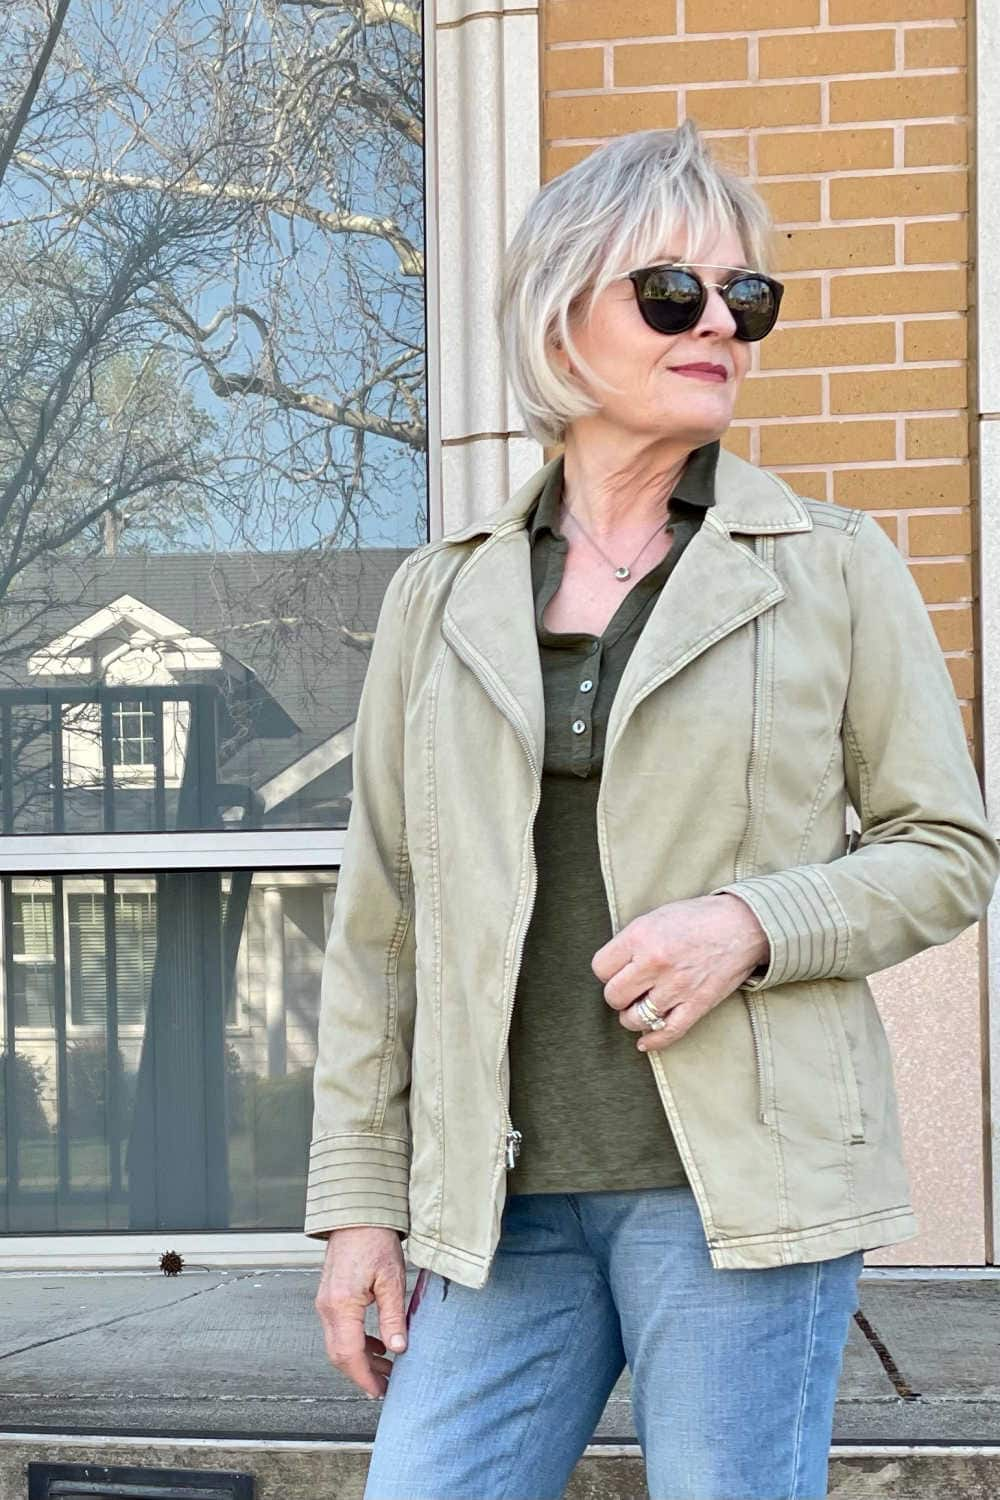 over 50 fashion blogger wearing green jacket and sunglasses